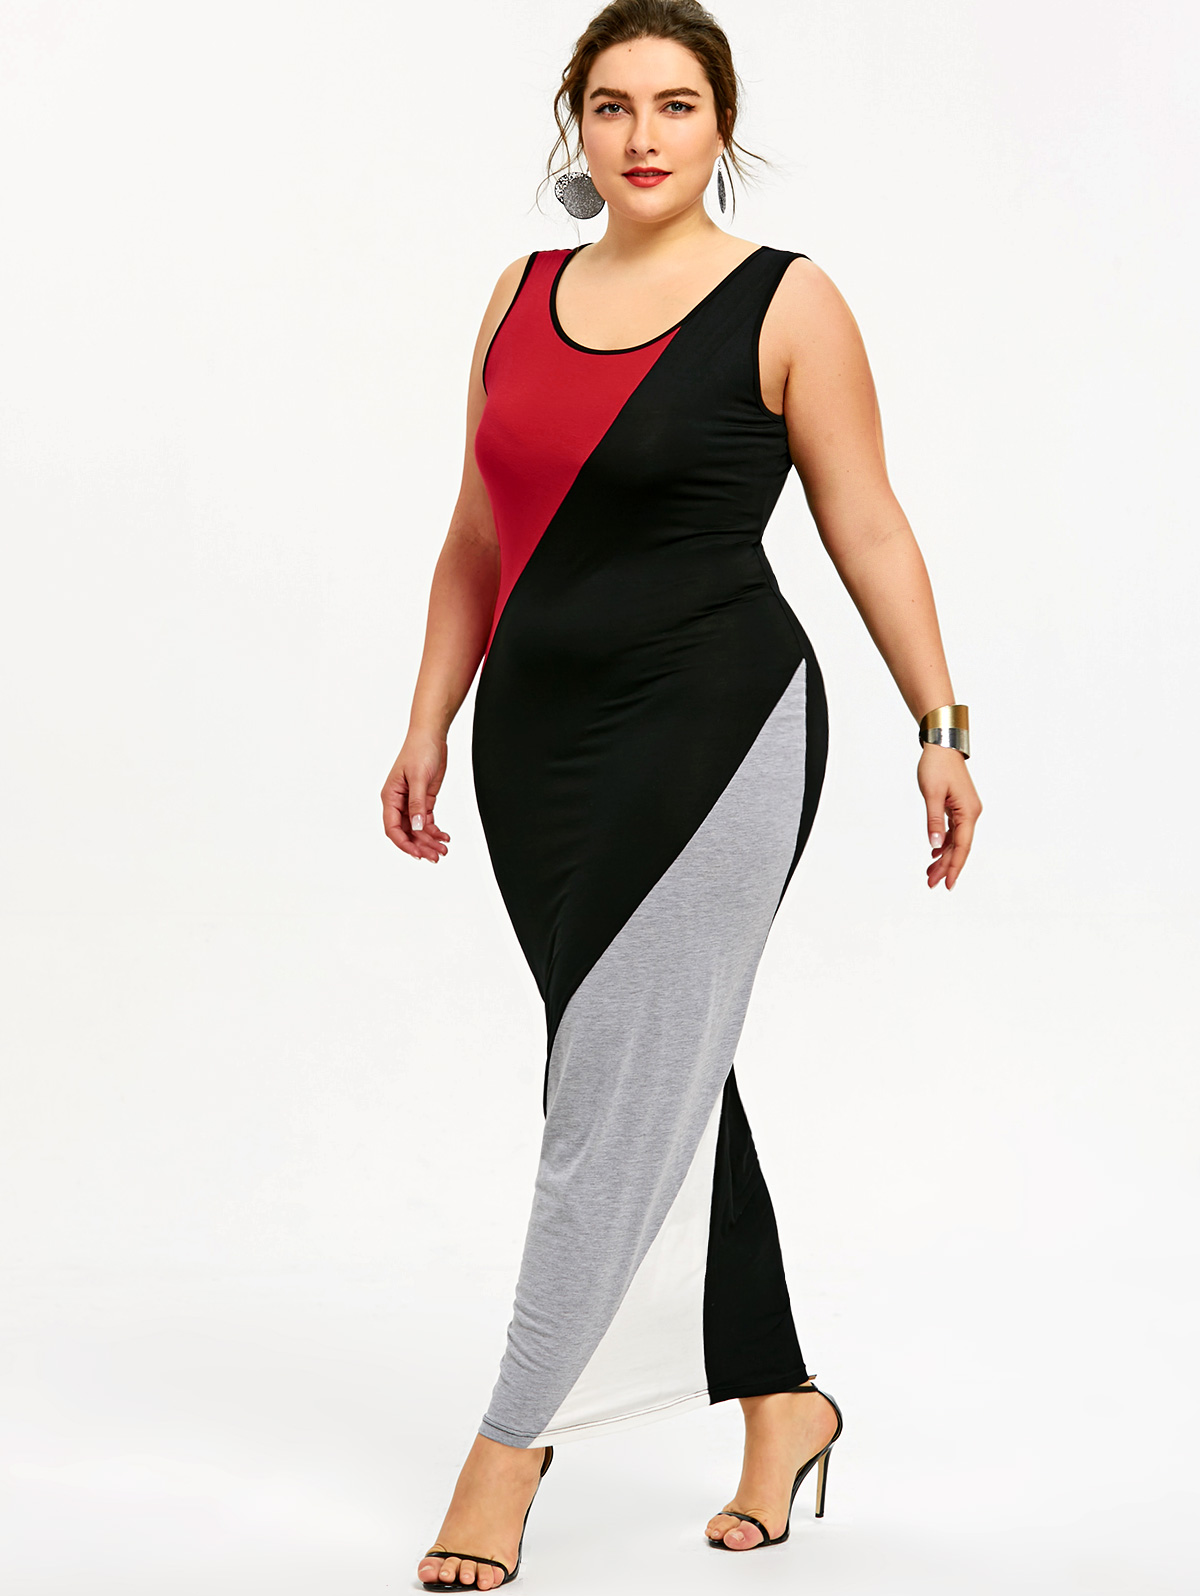 4a5aa893eff Gamiss Plus Size 5XL U Neck Maxi Tank Dress Color Block Sleeveless Women  Casual Black Red White Floor Length Dress Vestidos-in Dresses from Women s  Clothing ...